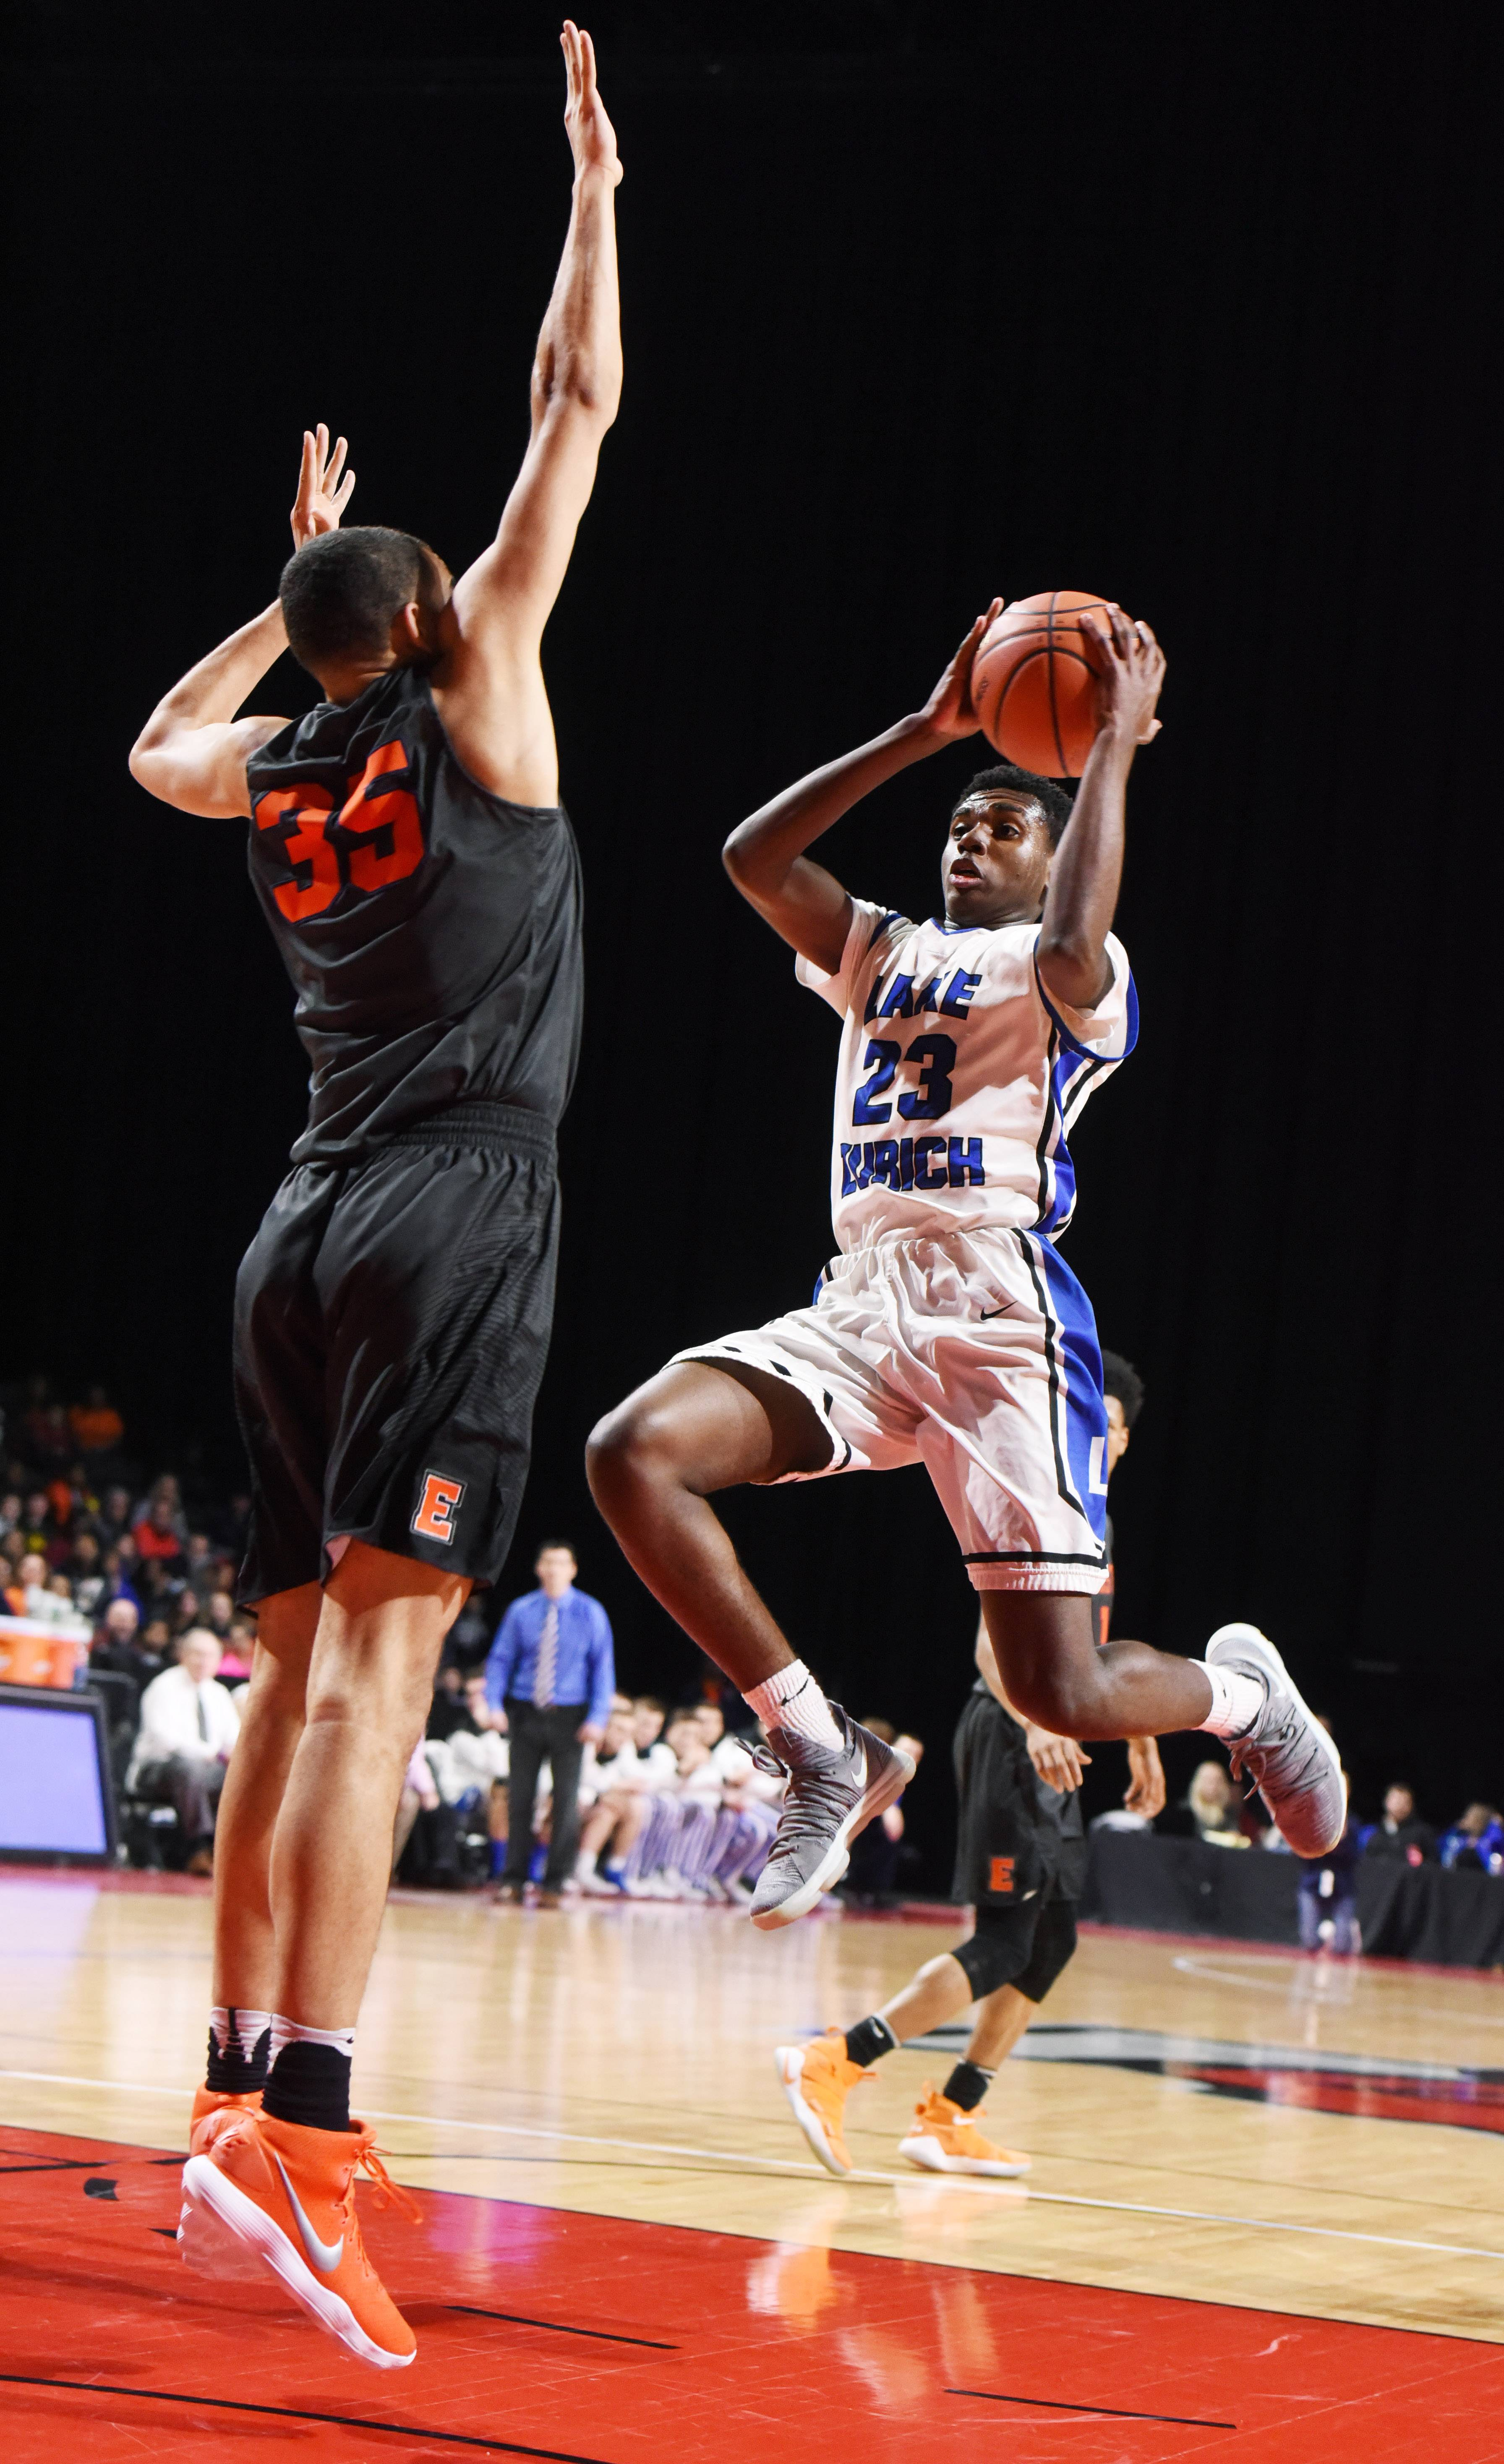 Lake Zurich's Kenny Haynes makes a move toward the basket against Evanston's Matt Hall during the Class 4A supersectional at the Sears Centre in Hoffman Estates Tuesday.